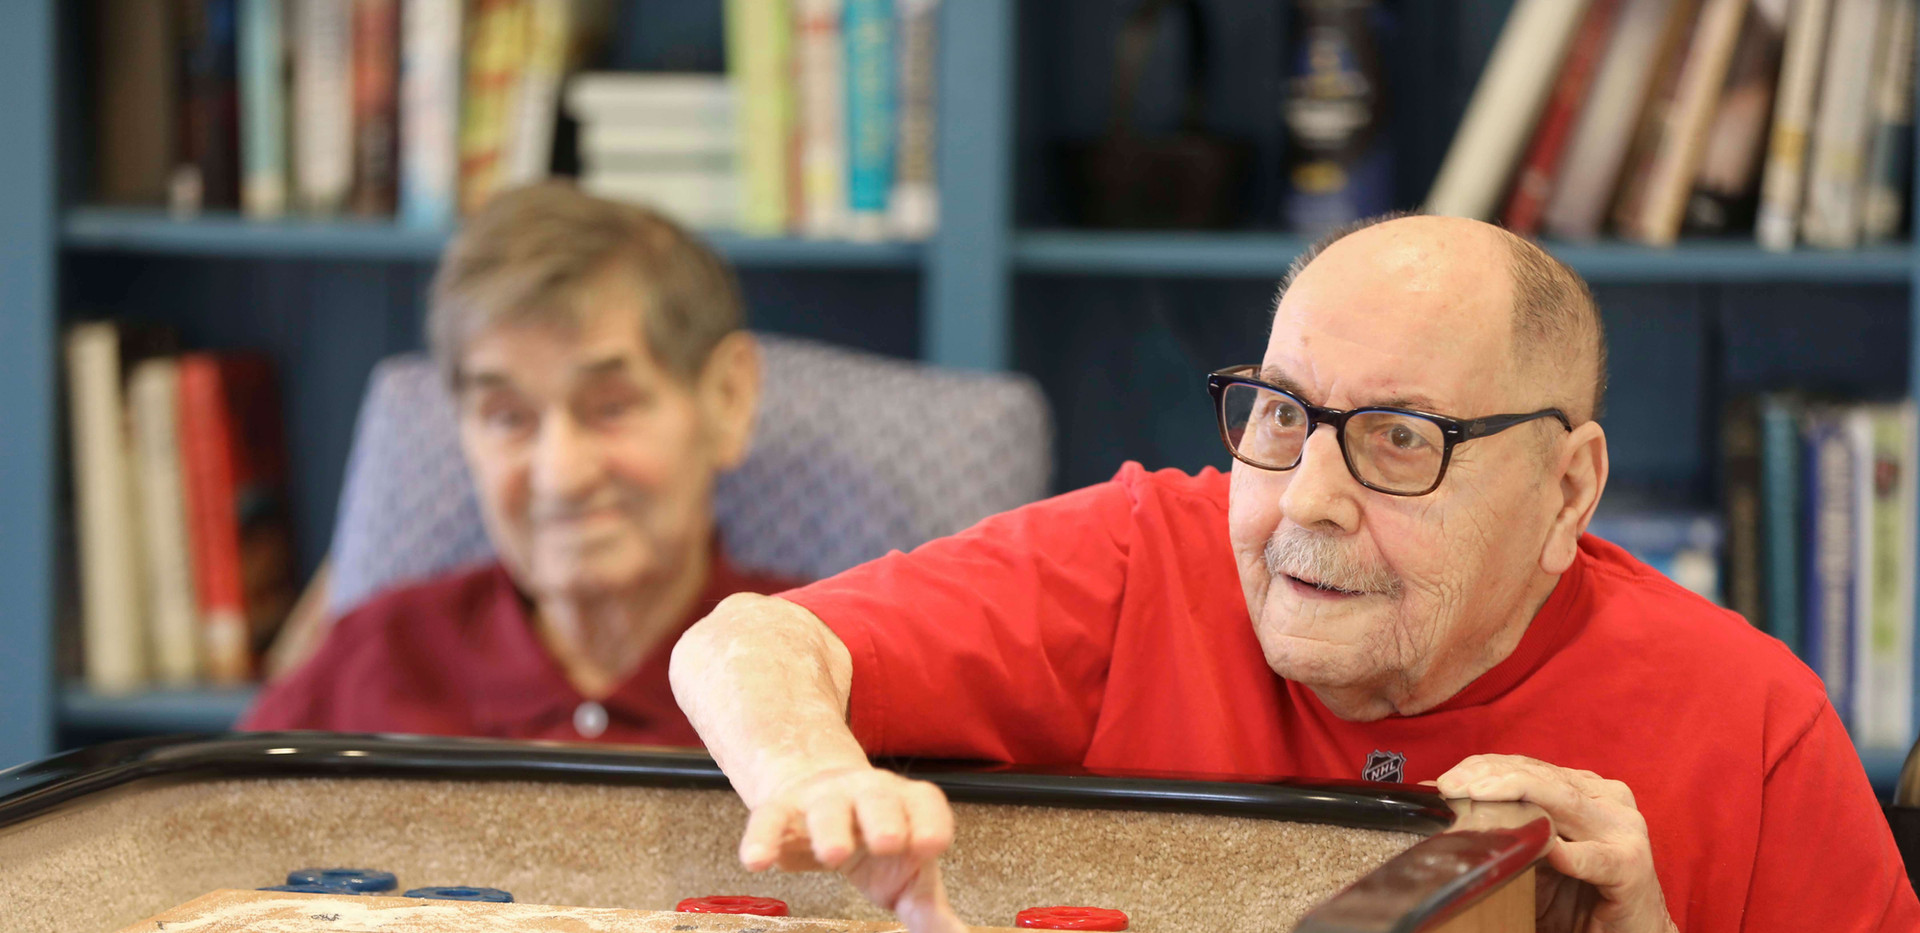 henley house senior residents playing shuffleboard